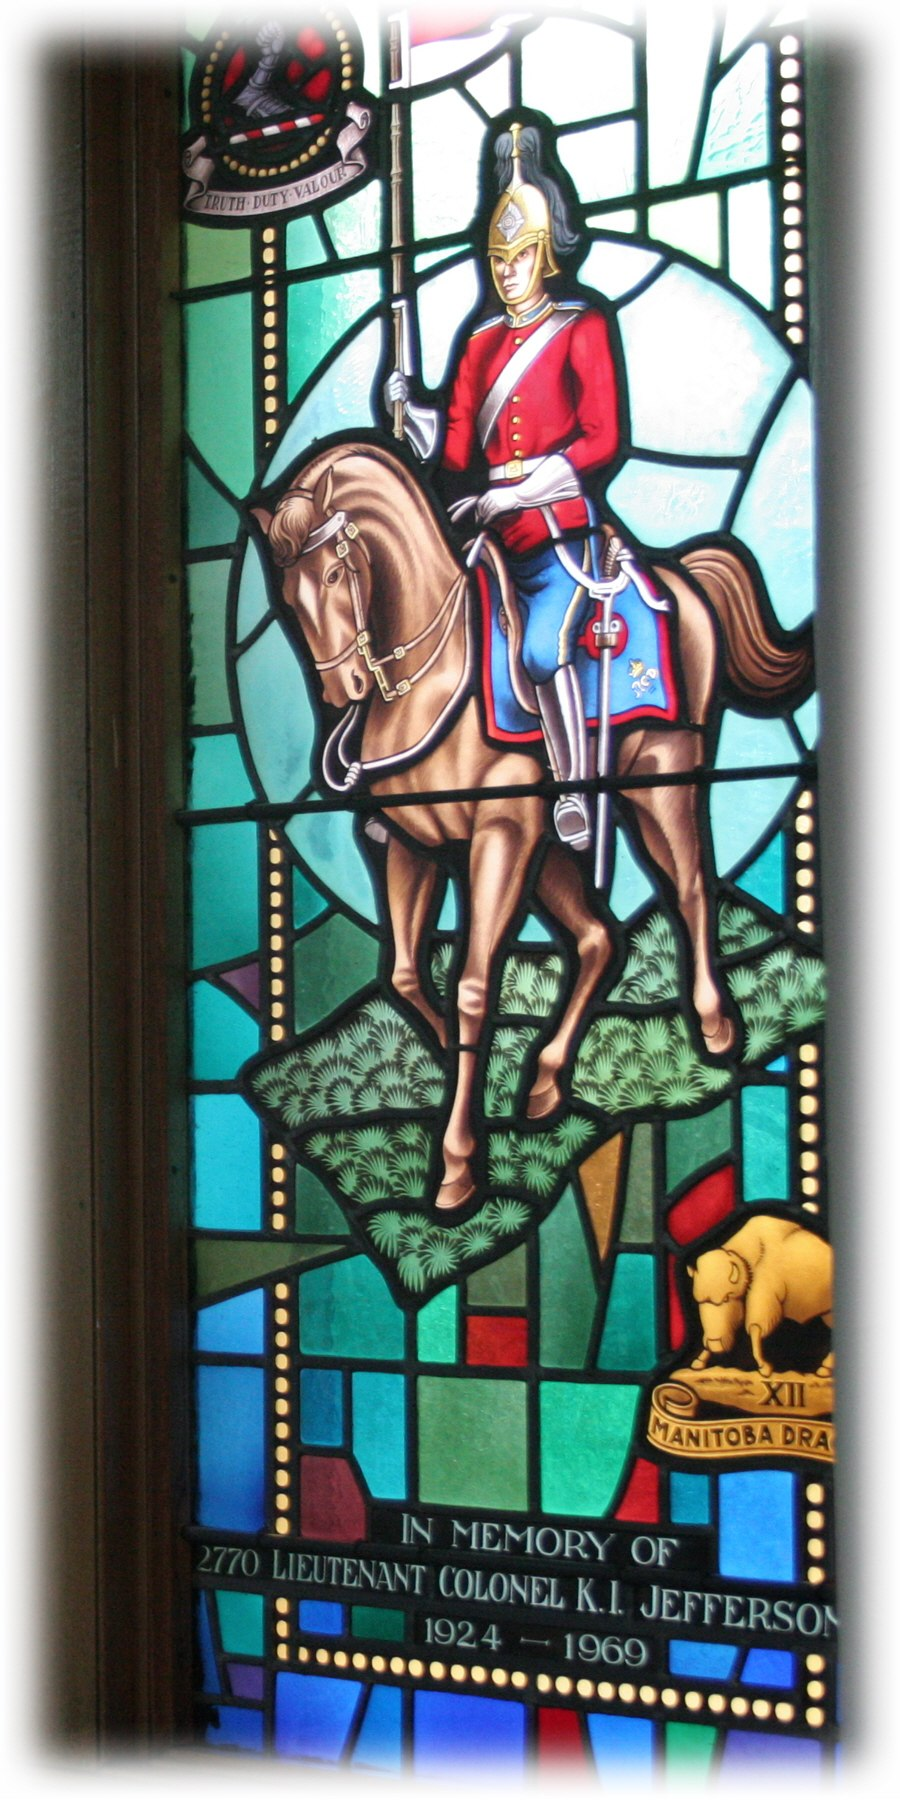 Memorial Stained Glass window, 2770 LCol KL Jefferson, Royal Military College of Canada